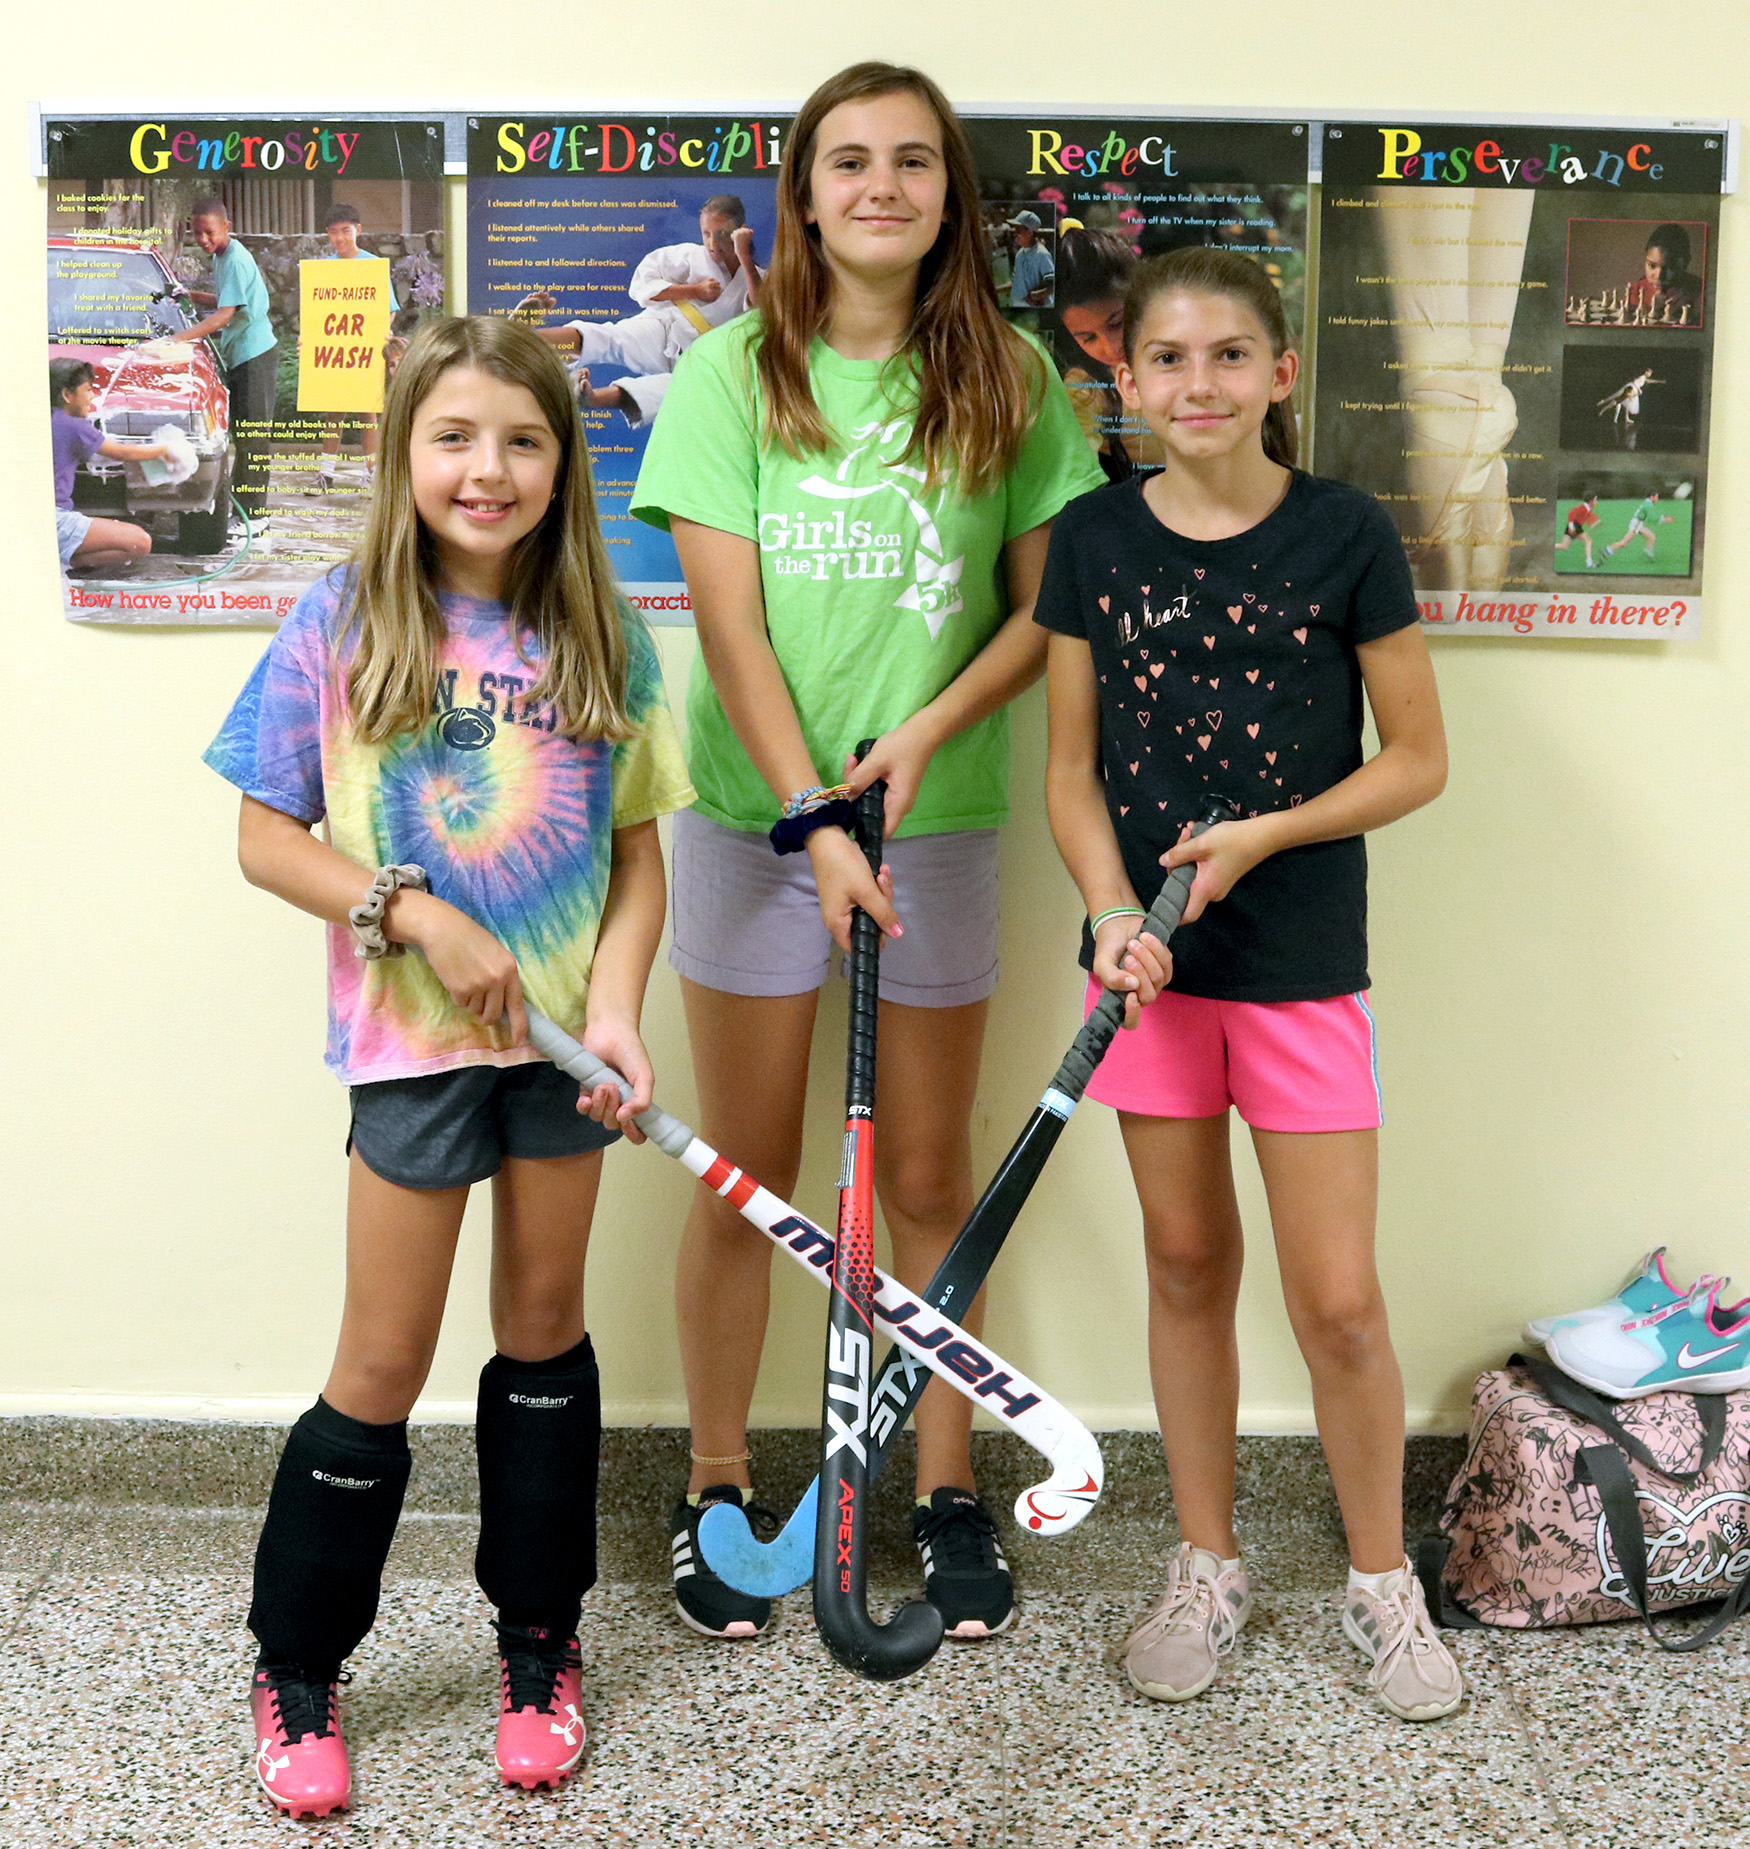 Three field hockey players